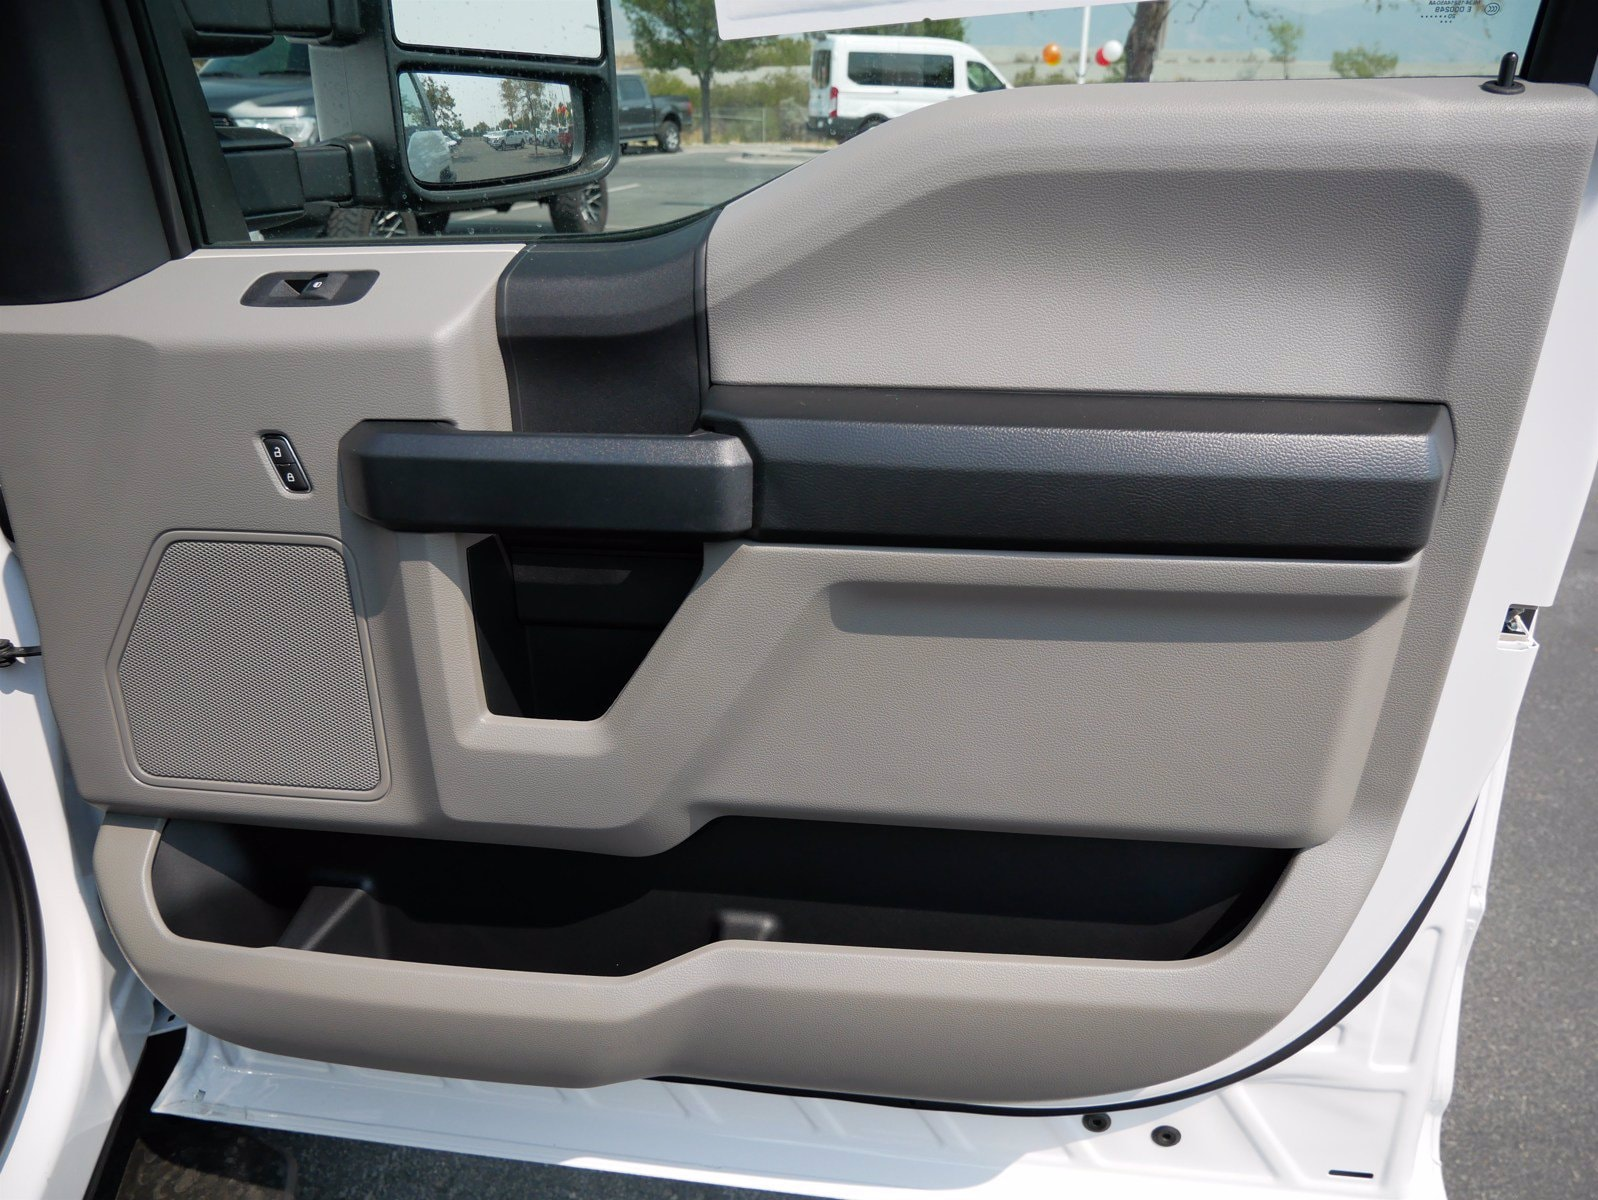 2020 Ford F-550 Crew Cab DRW 4x4, Cab Chassis #63166 - photo 30